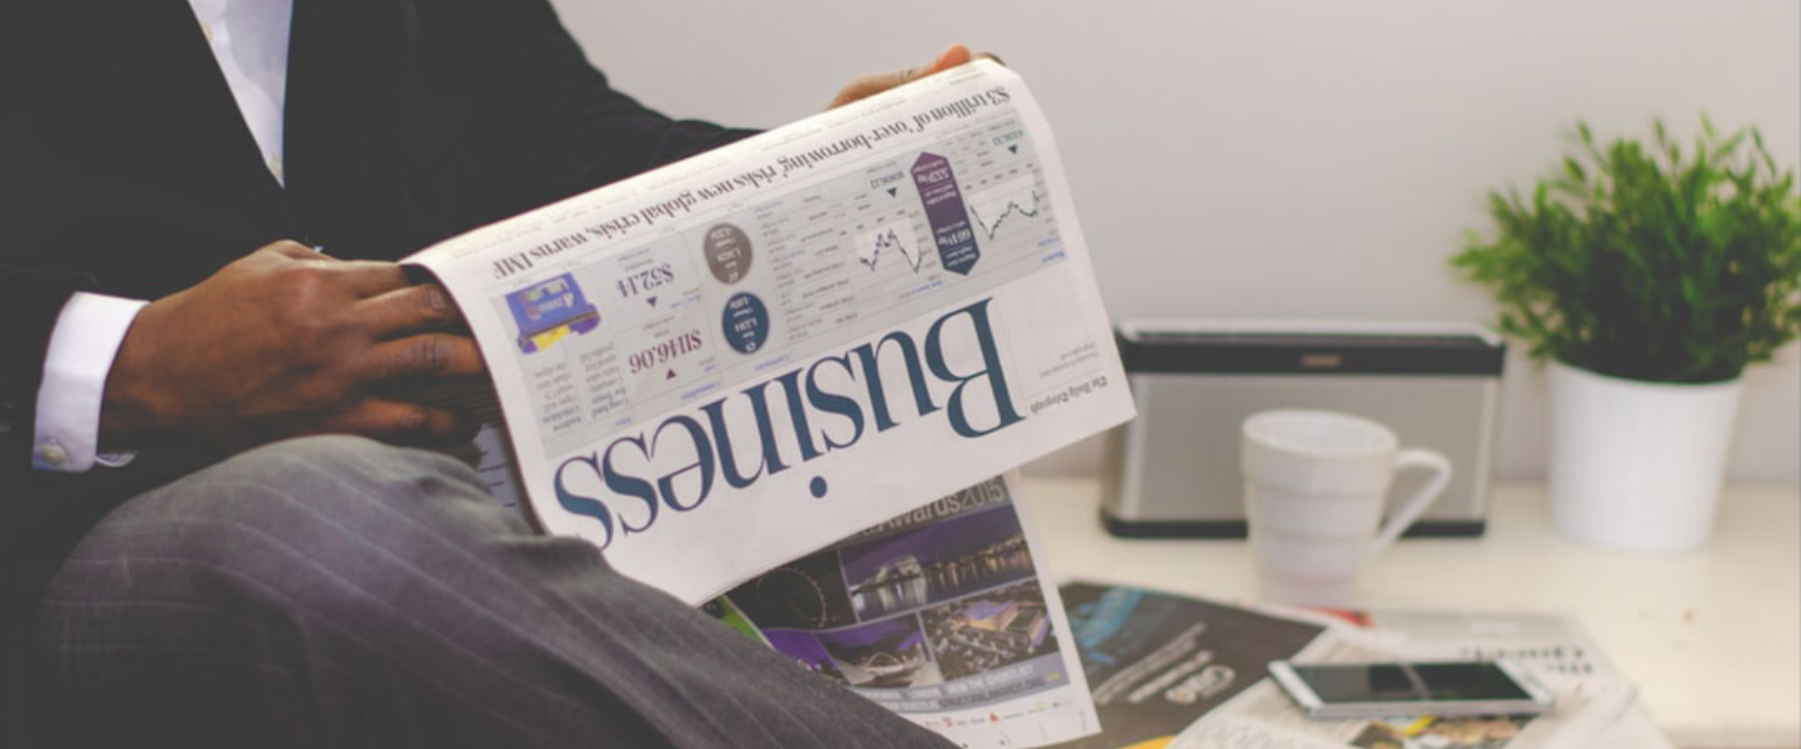 Man in a suit reading a business newspaper